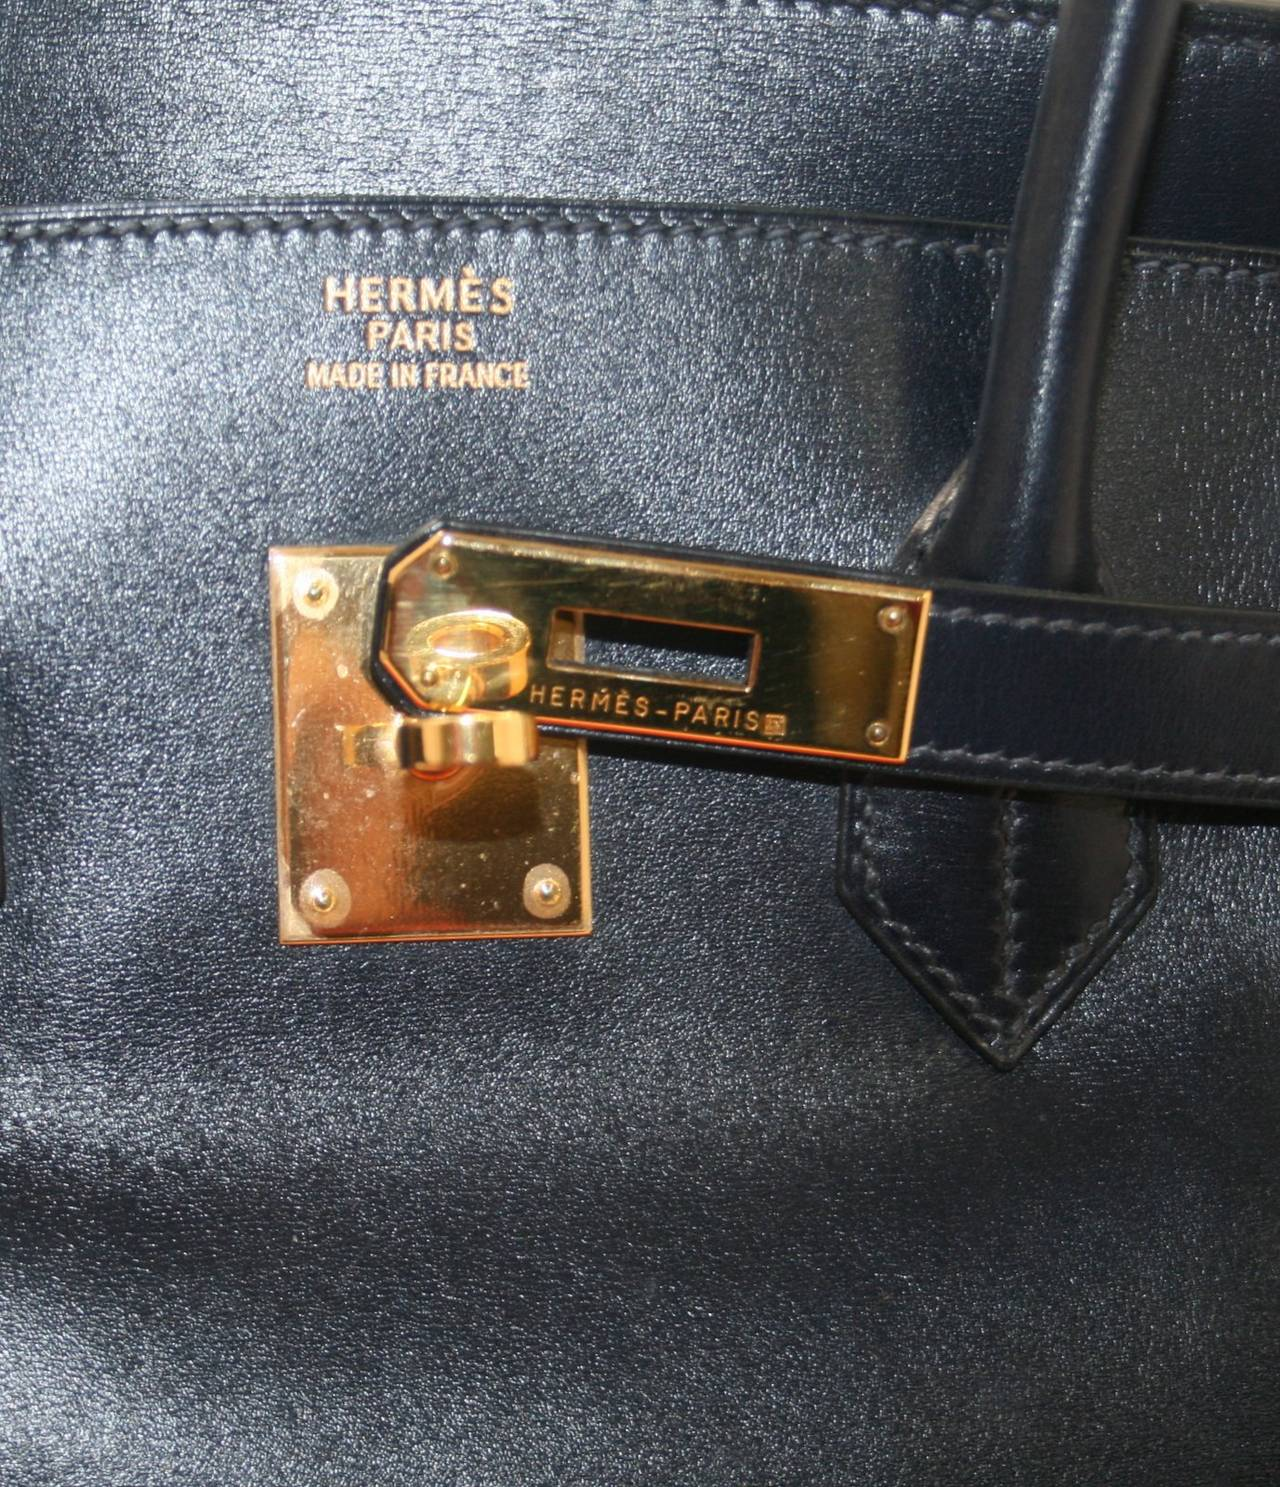 knockoff hermes - Herm��s 35 cm Indigo Box Calf Leather Birkin Bag with Gold at 1stdibs